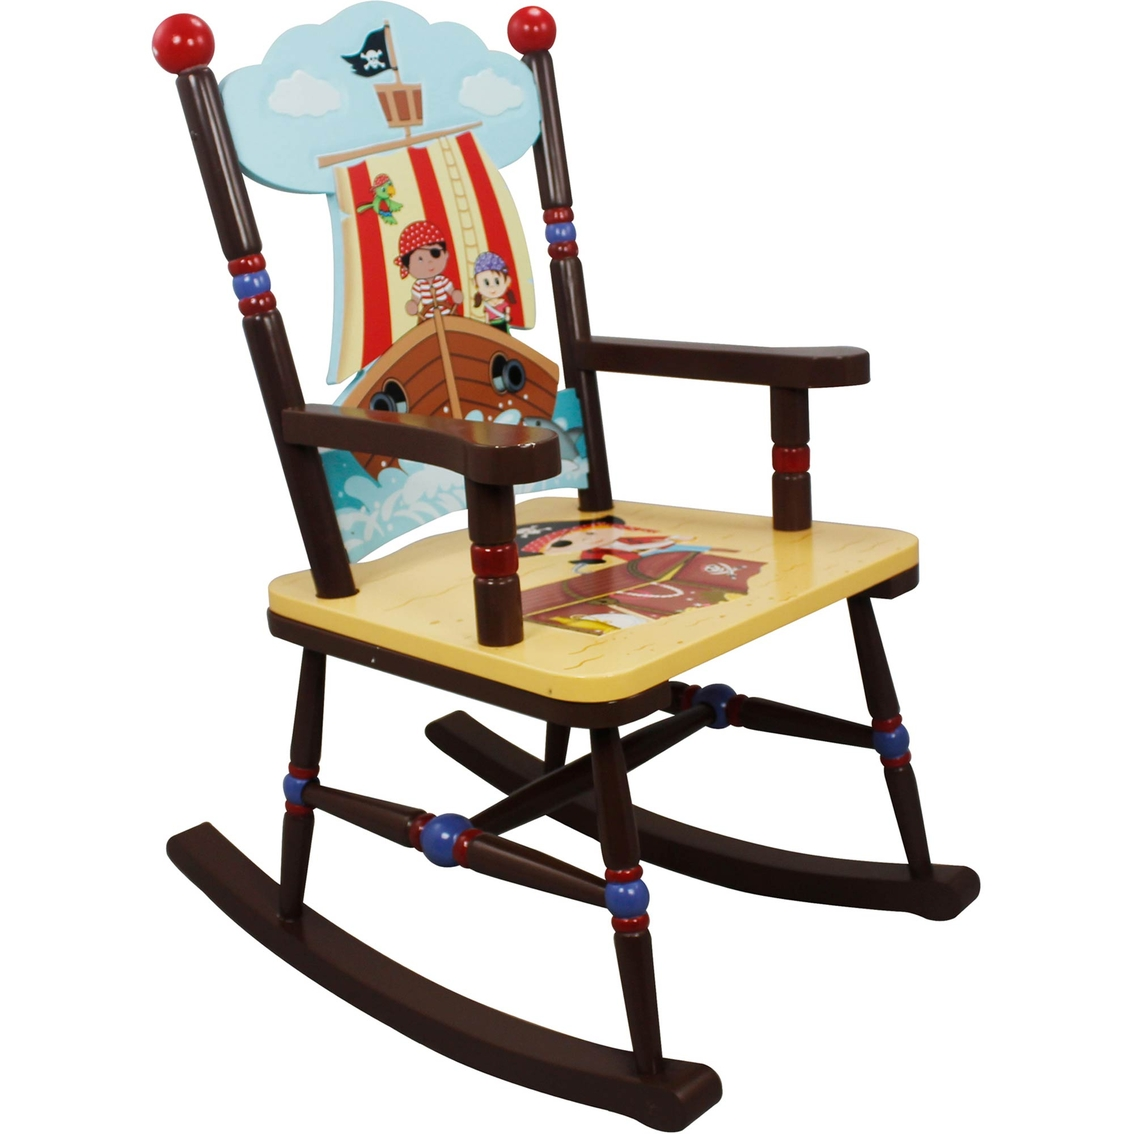 Fantasy fields pirates island rocking chair chairs play tables home appliances shop - Automatic rocking chair for adults ...